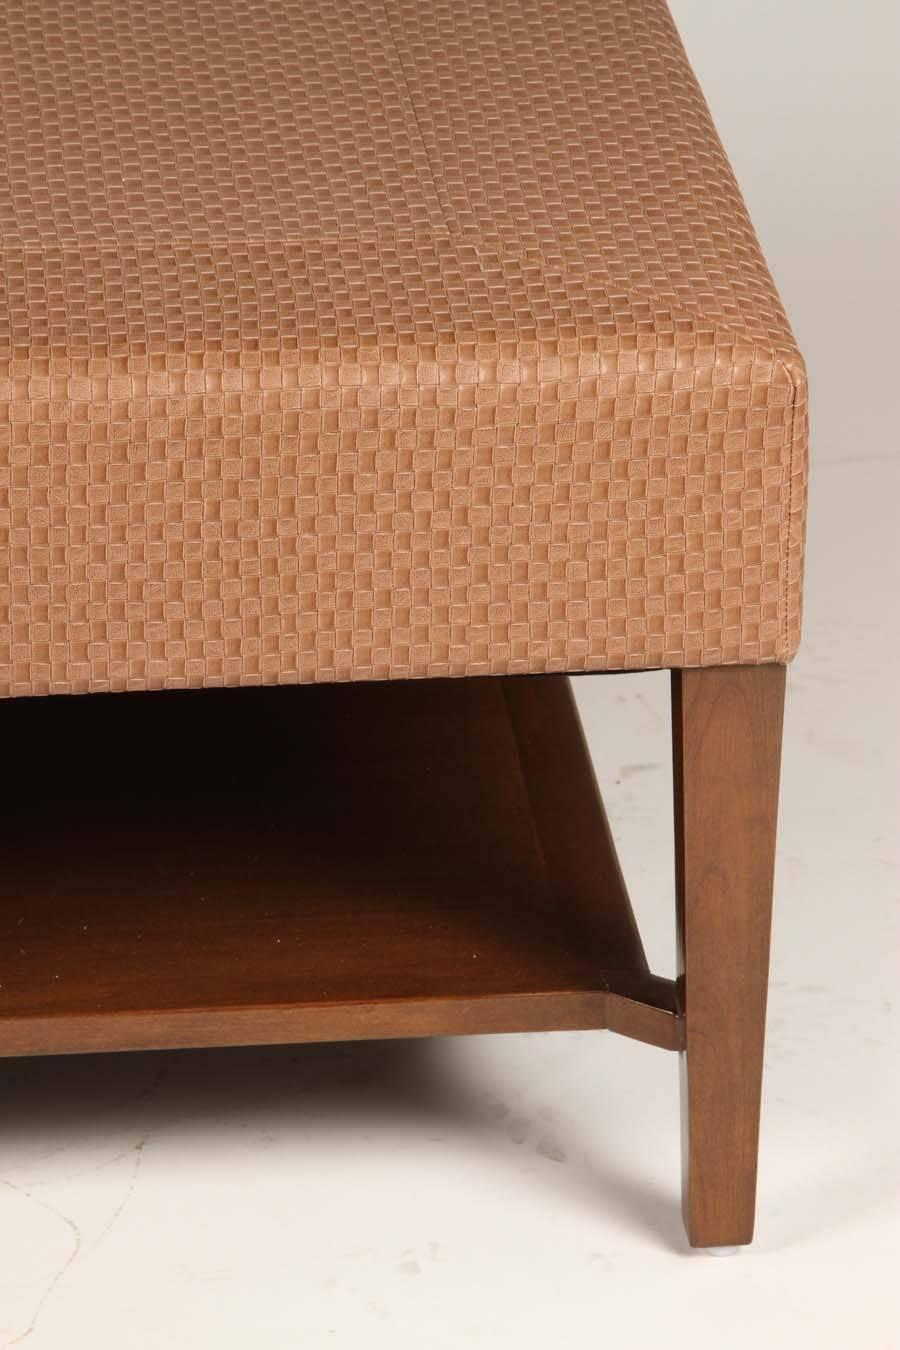 Large-Scale Upholstered Coffee Table For Sale at 1stdibs